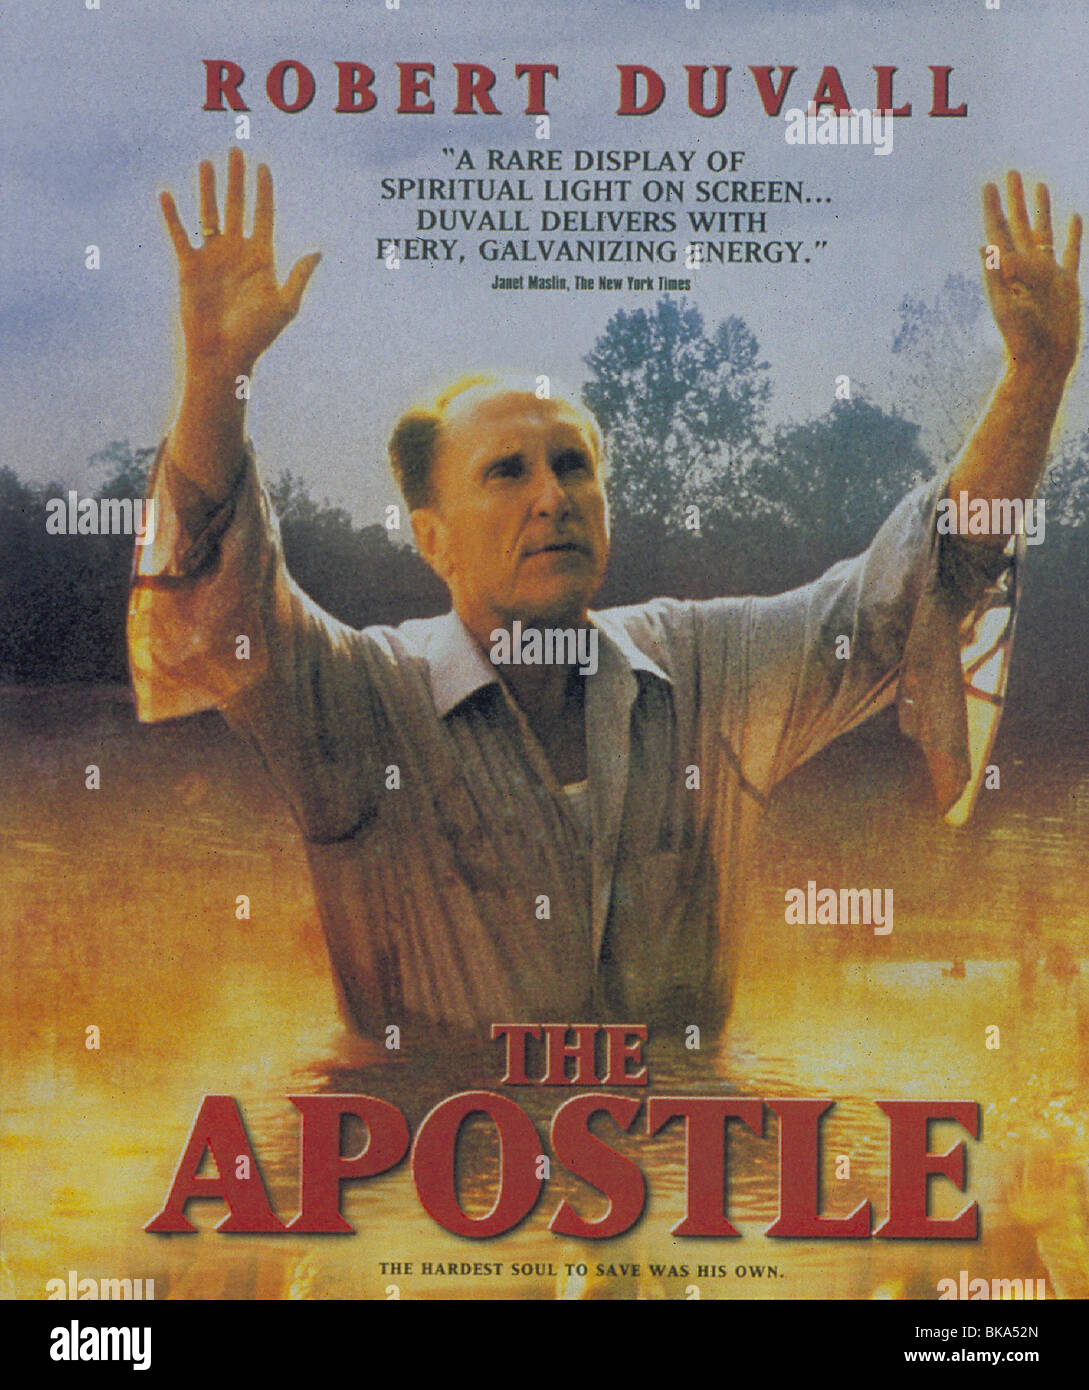 THE APOSTLE -1999 POSTER - Stock Image